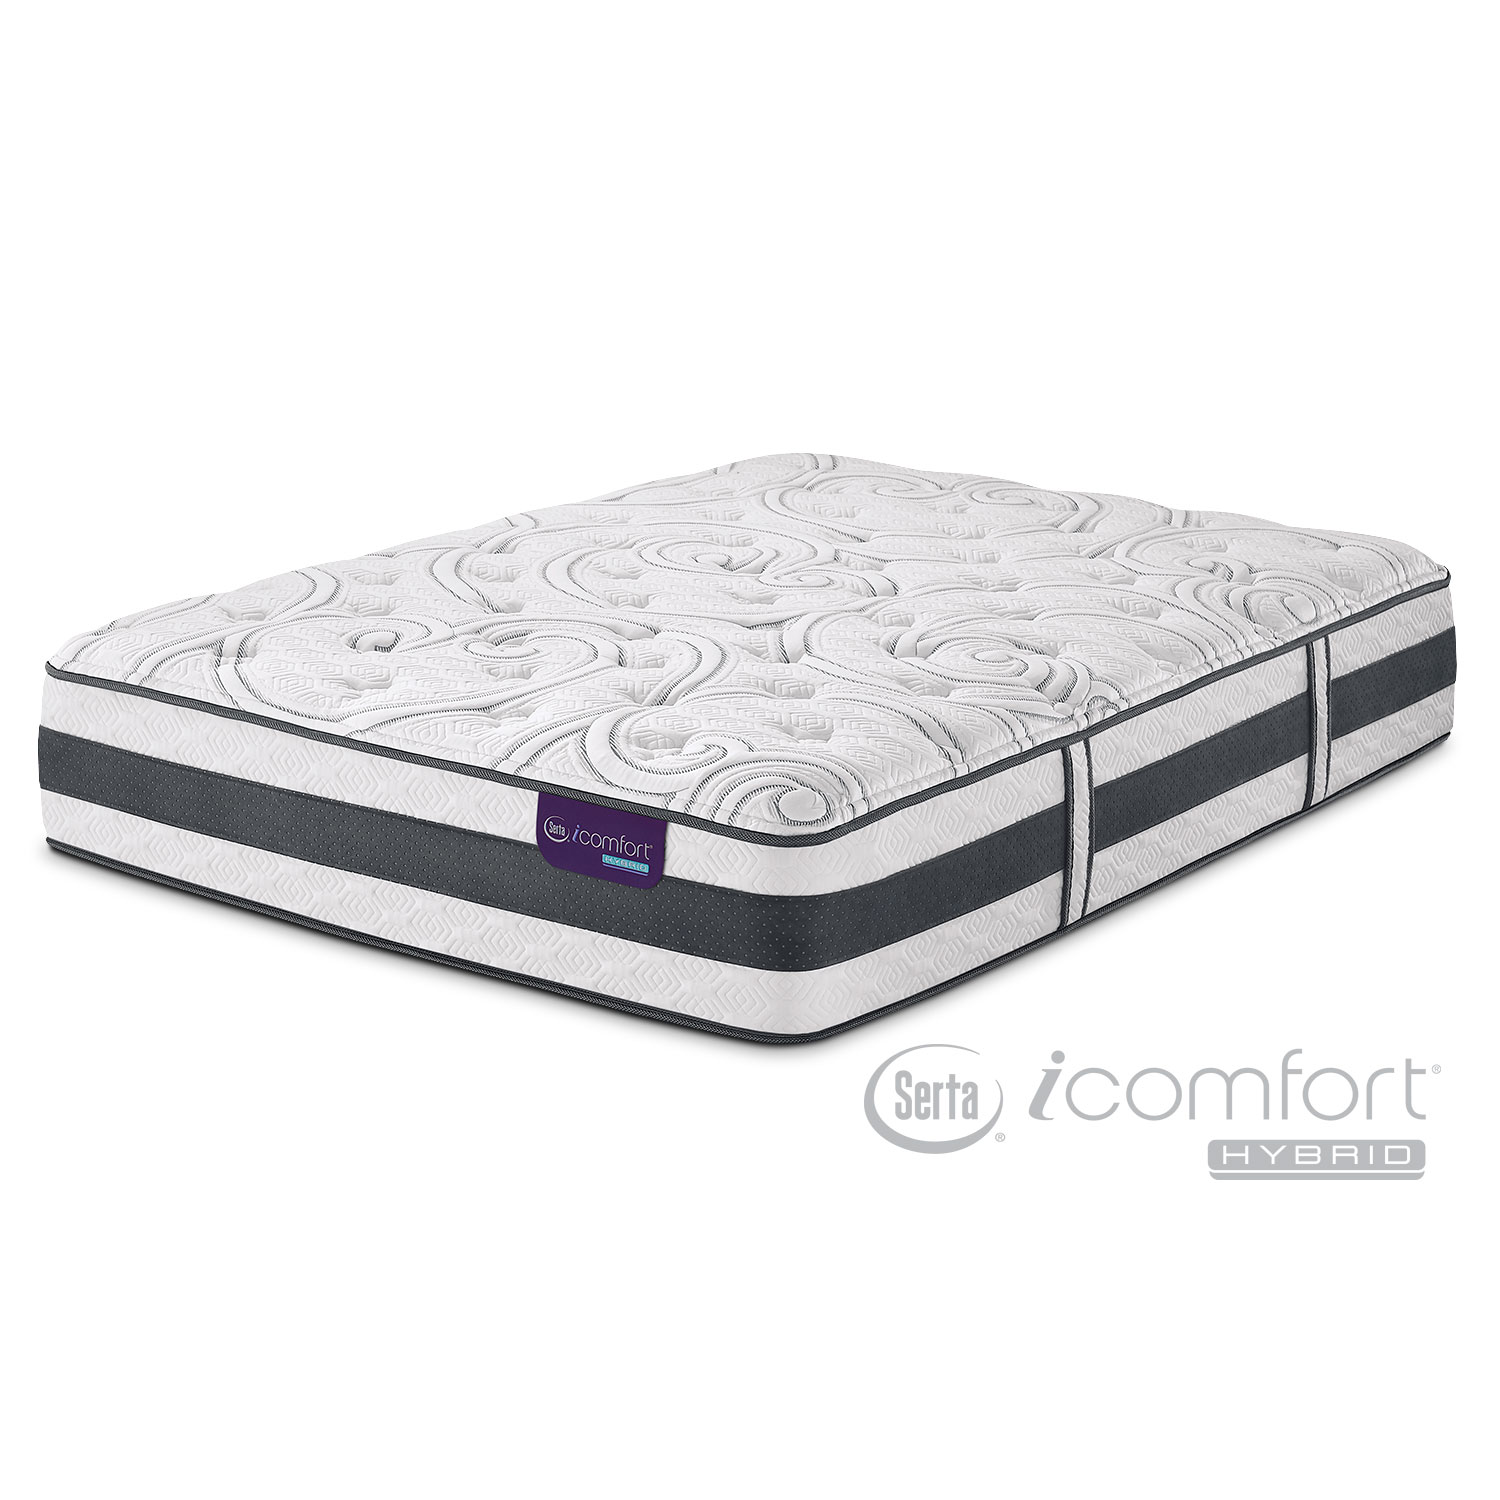 Mattresses and Bedding - Applause II Plush Twin XL Mattress